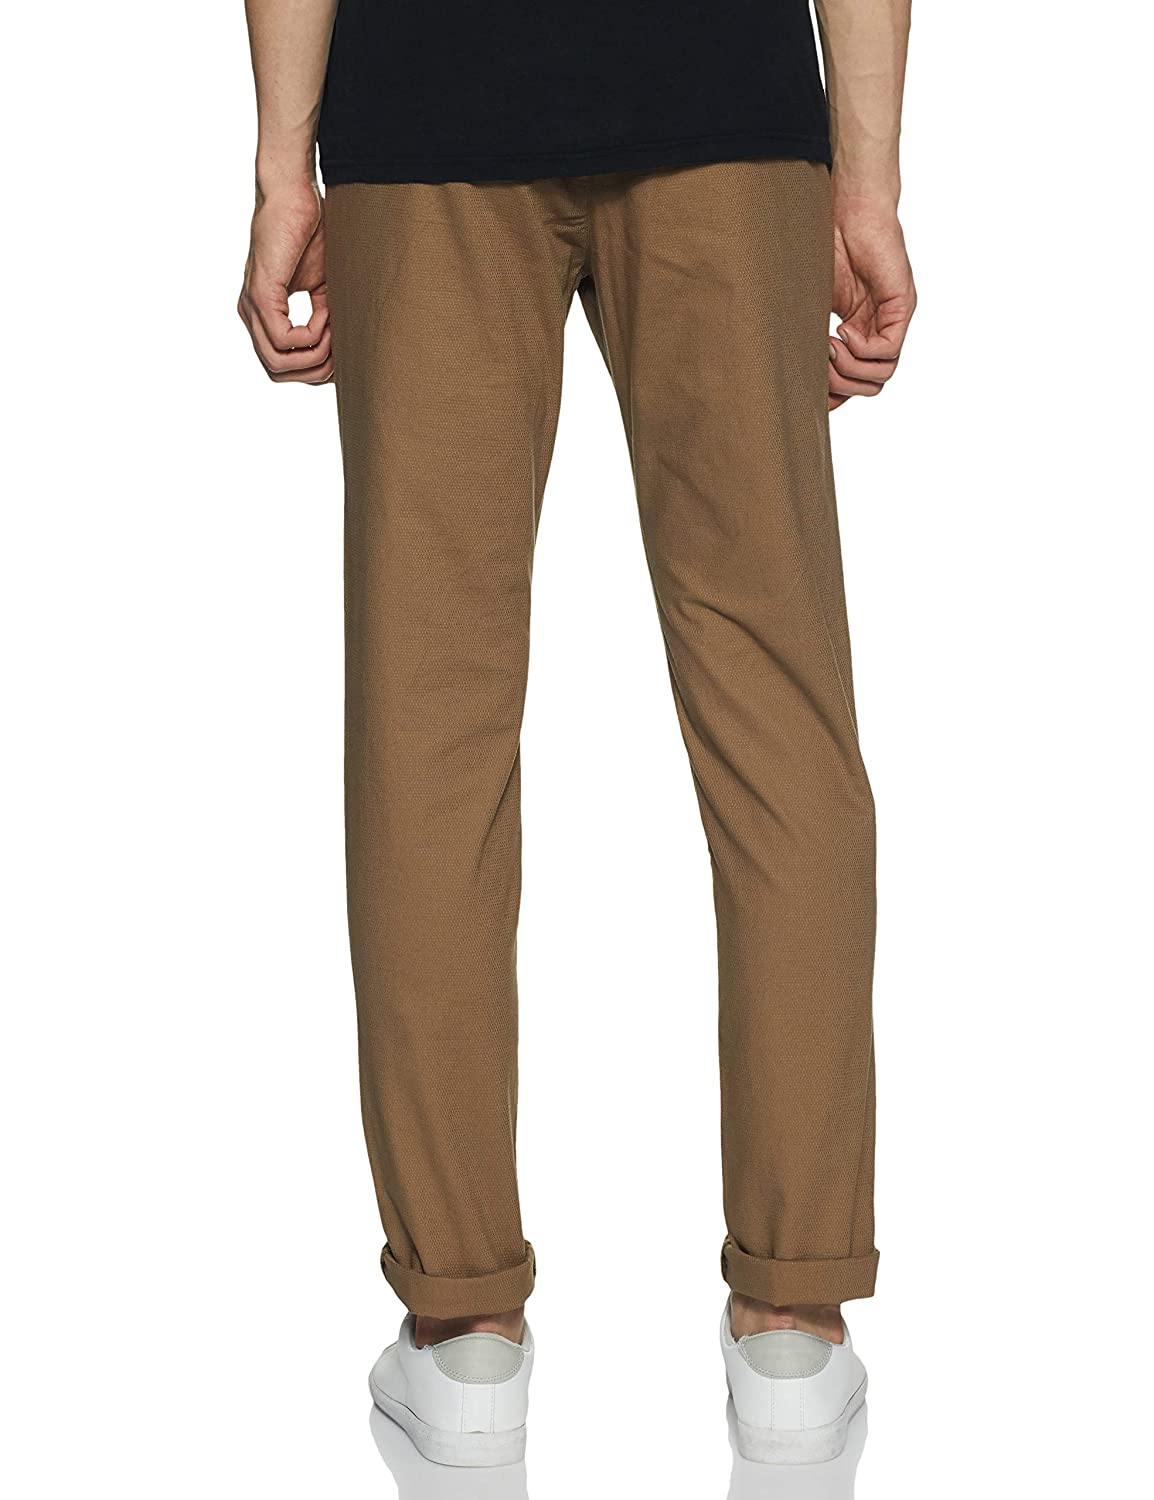 Buy Indian Terrain Clothes For Men's at 45% Off on Trousers Online